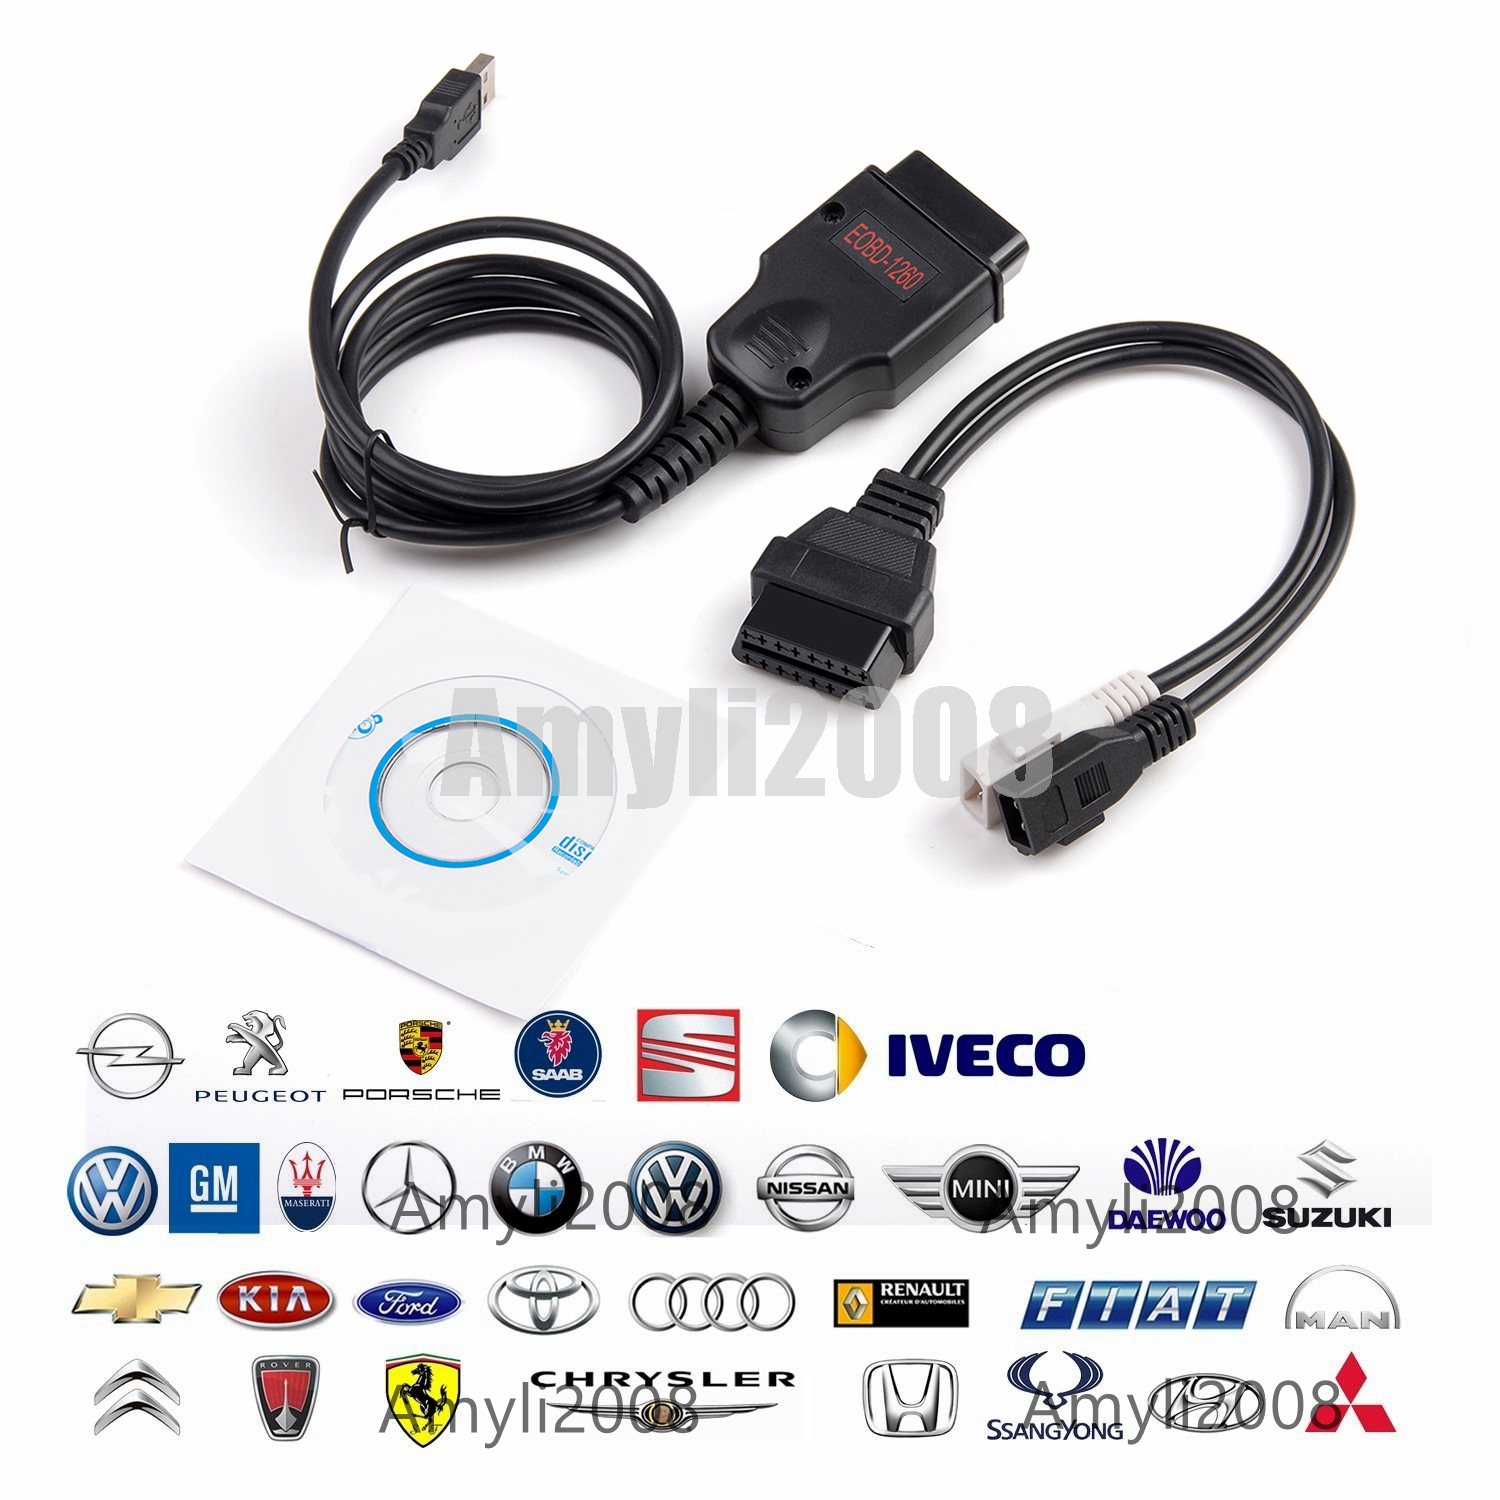 Ecu tuning other diagnostic service tools ebay odb2 galletto eobd 1260 ecu tuning diagnostic programmer remap flasher vag cable fandeluxe Gallery